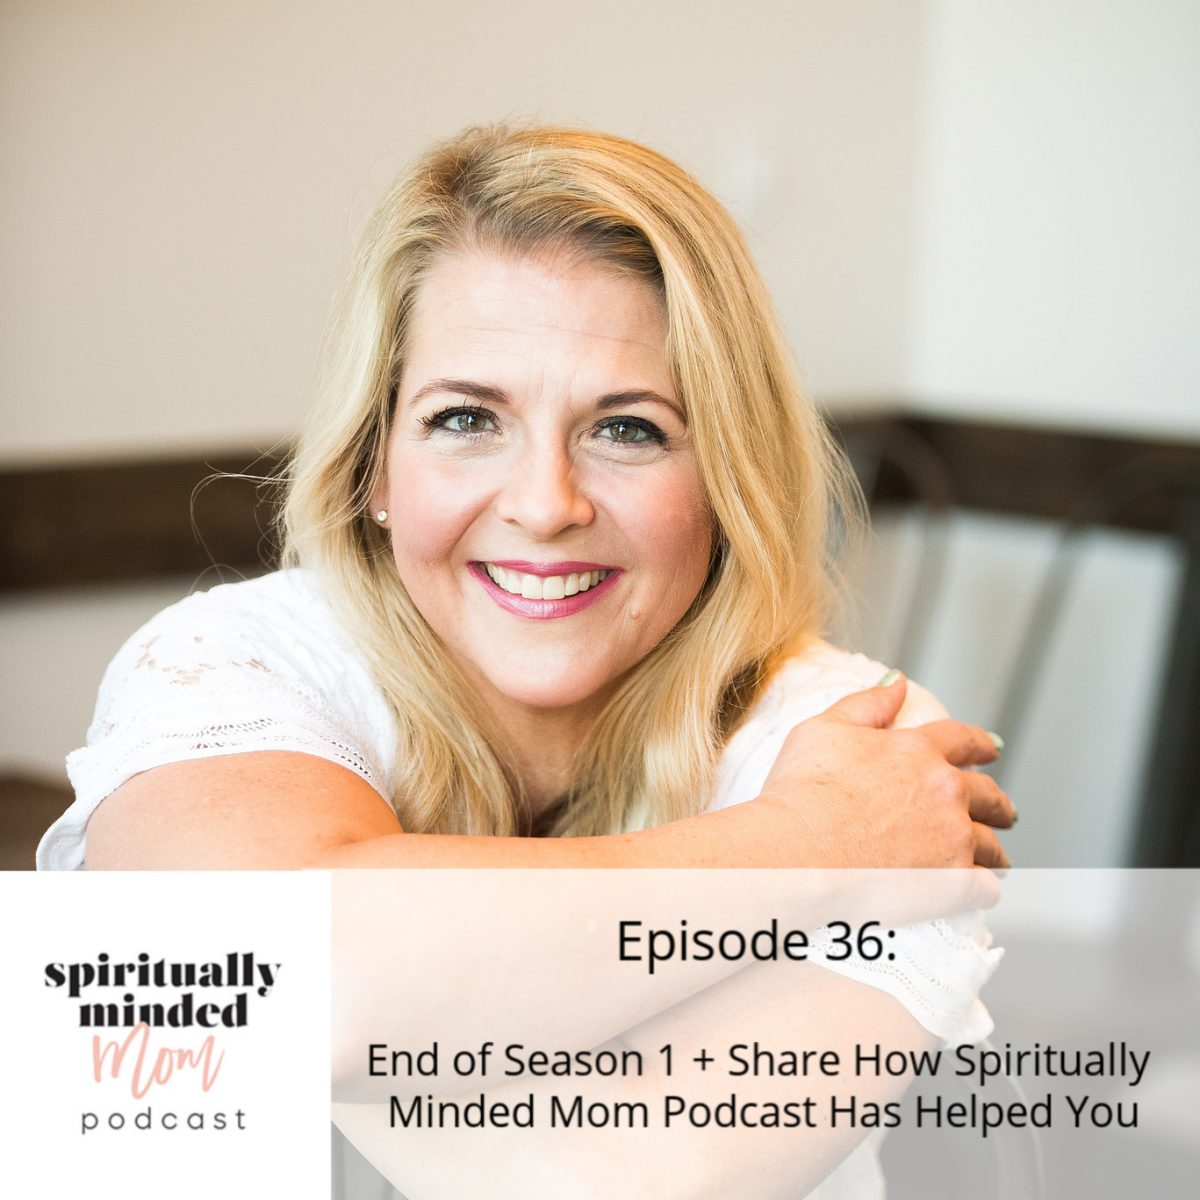 SMM 036: End of Season 1 + Share How Spiritually Minded Mom Podcast Has Helped You || Darla Trendler